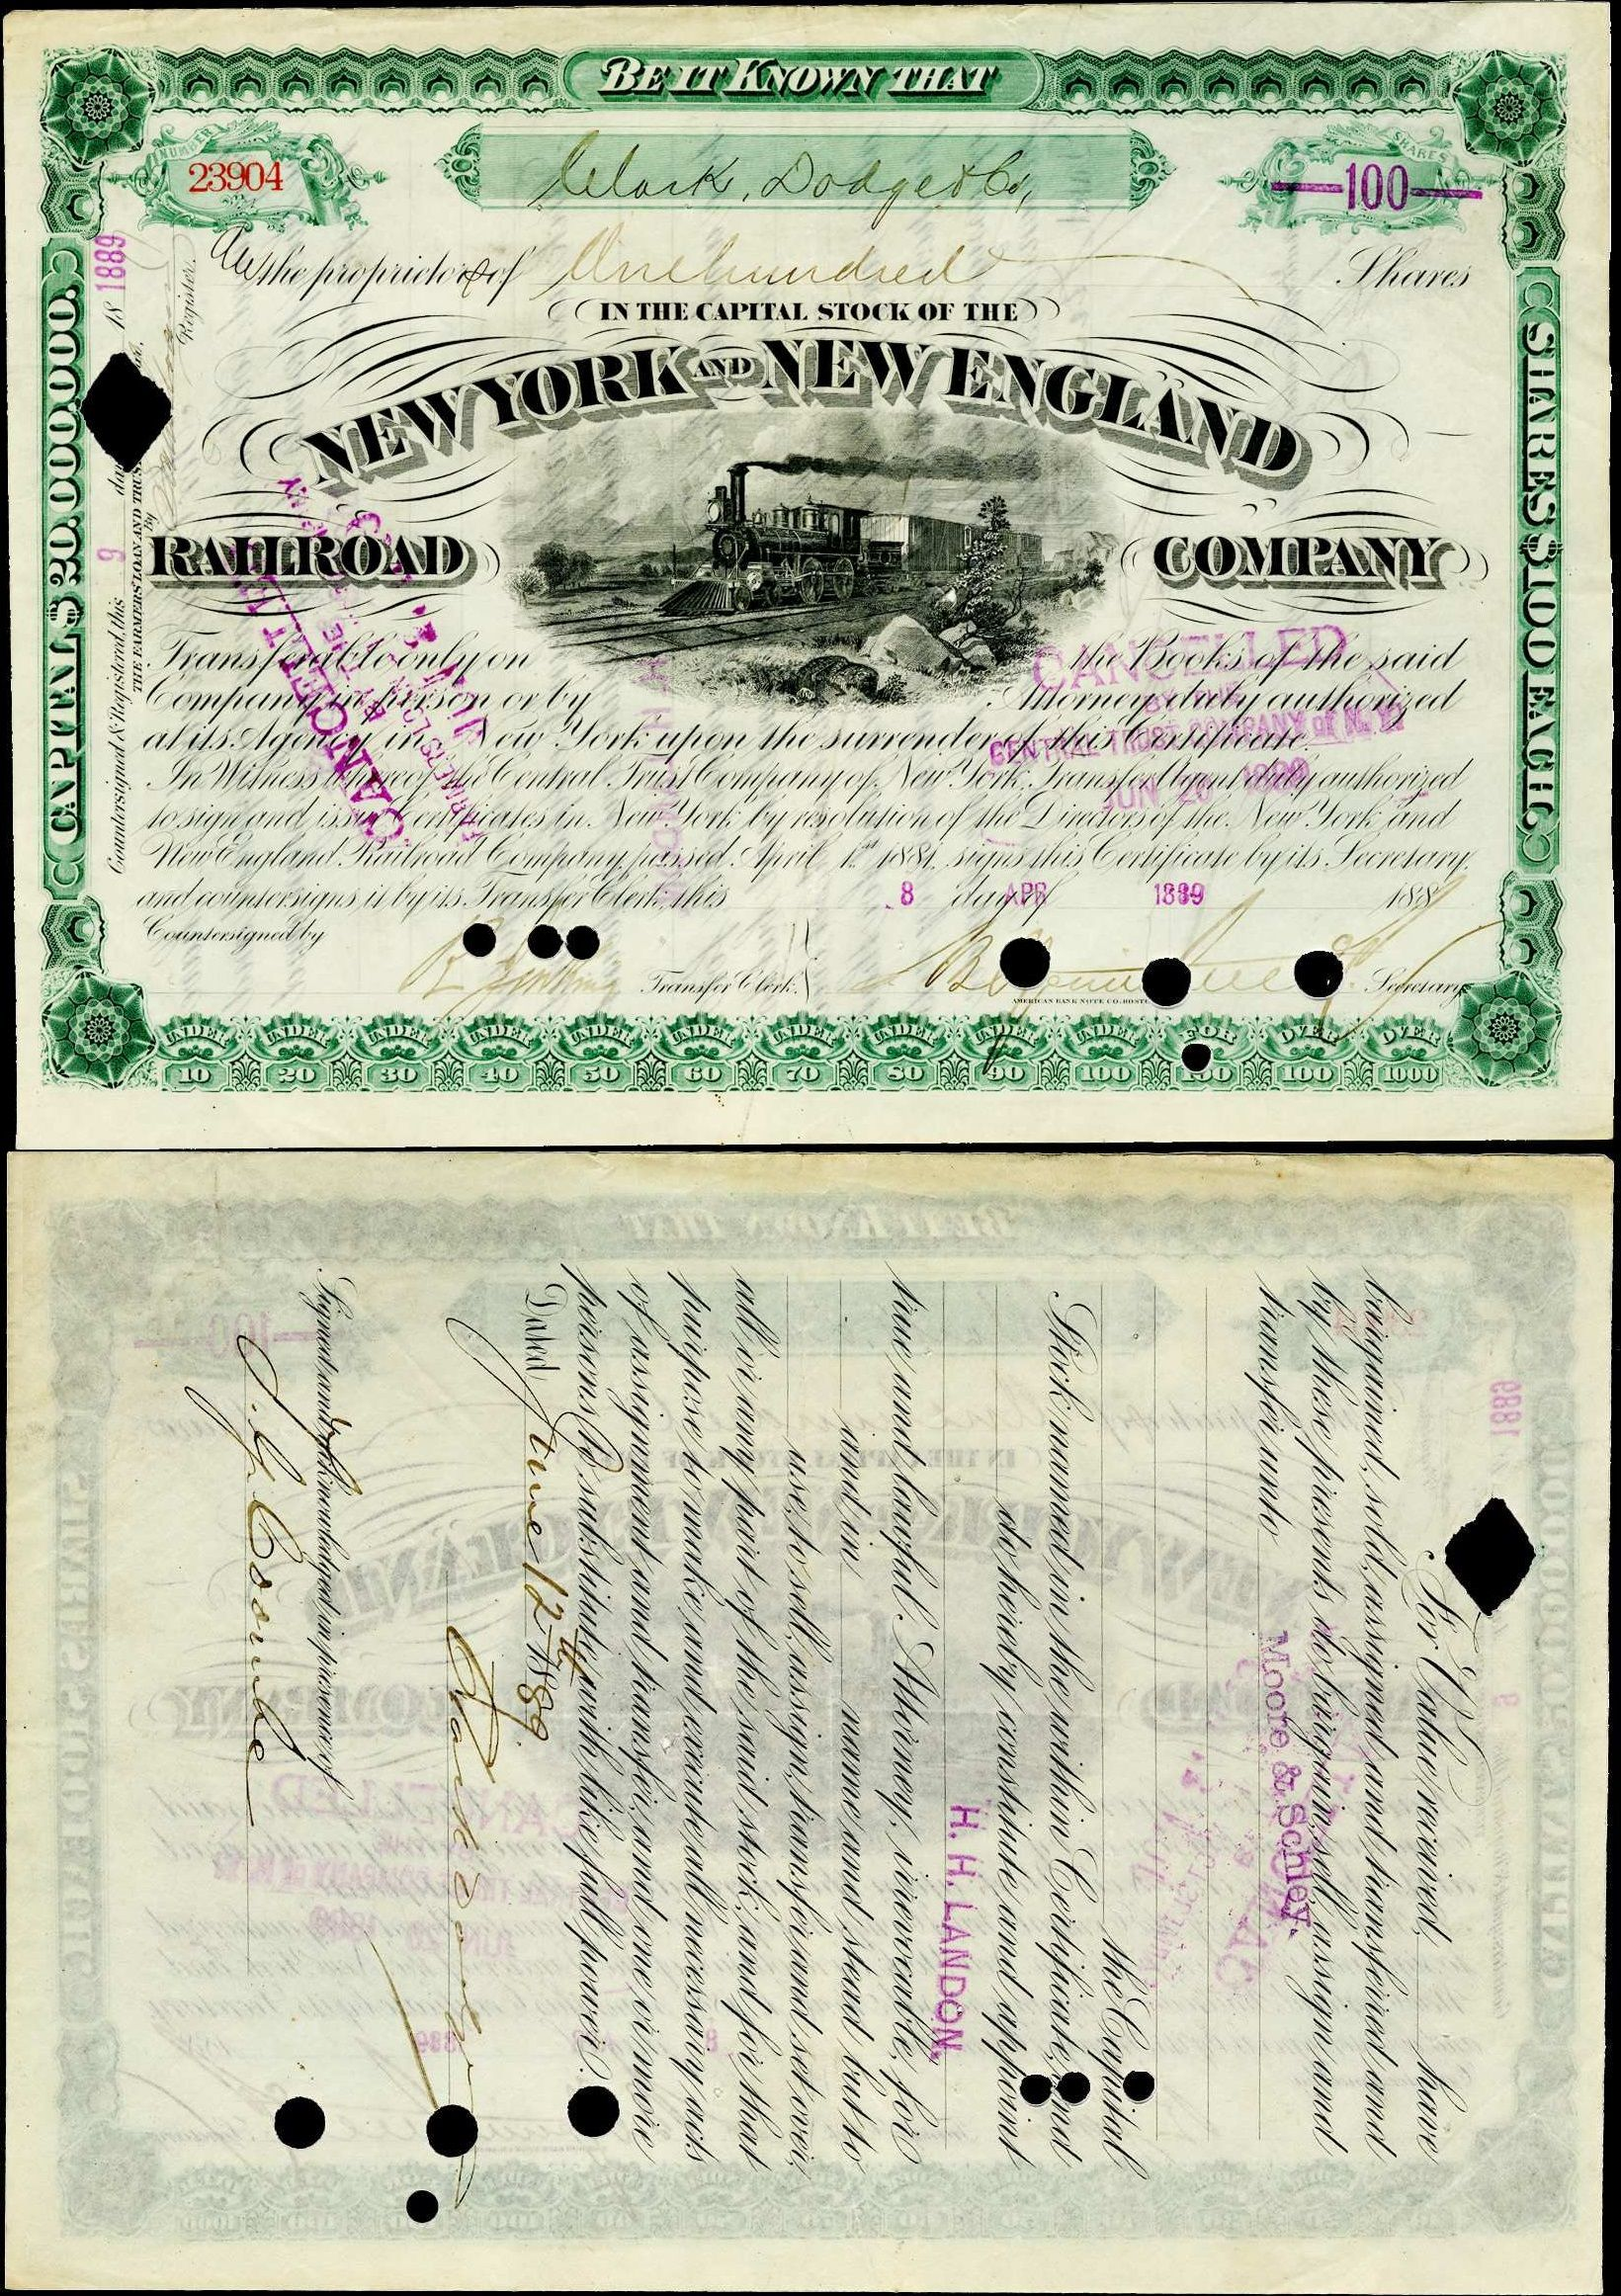 1889 New York New England Railroad Company Stock Certificate 100